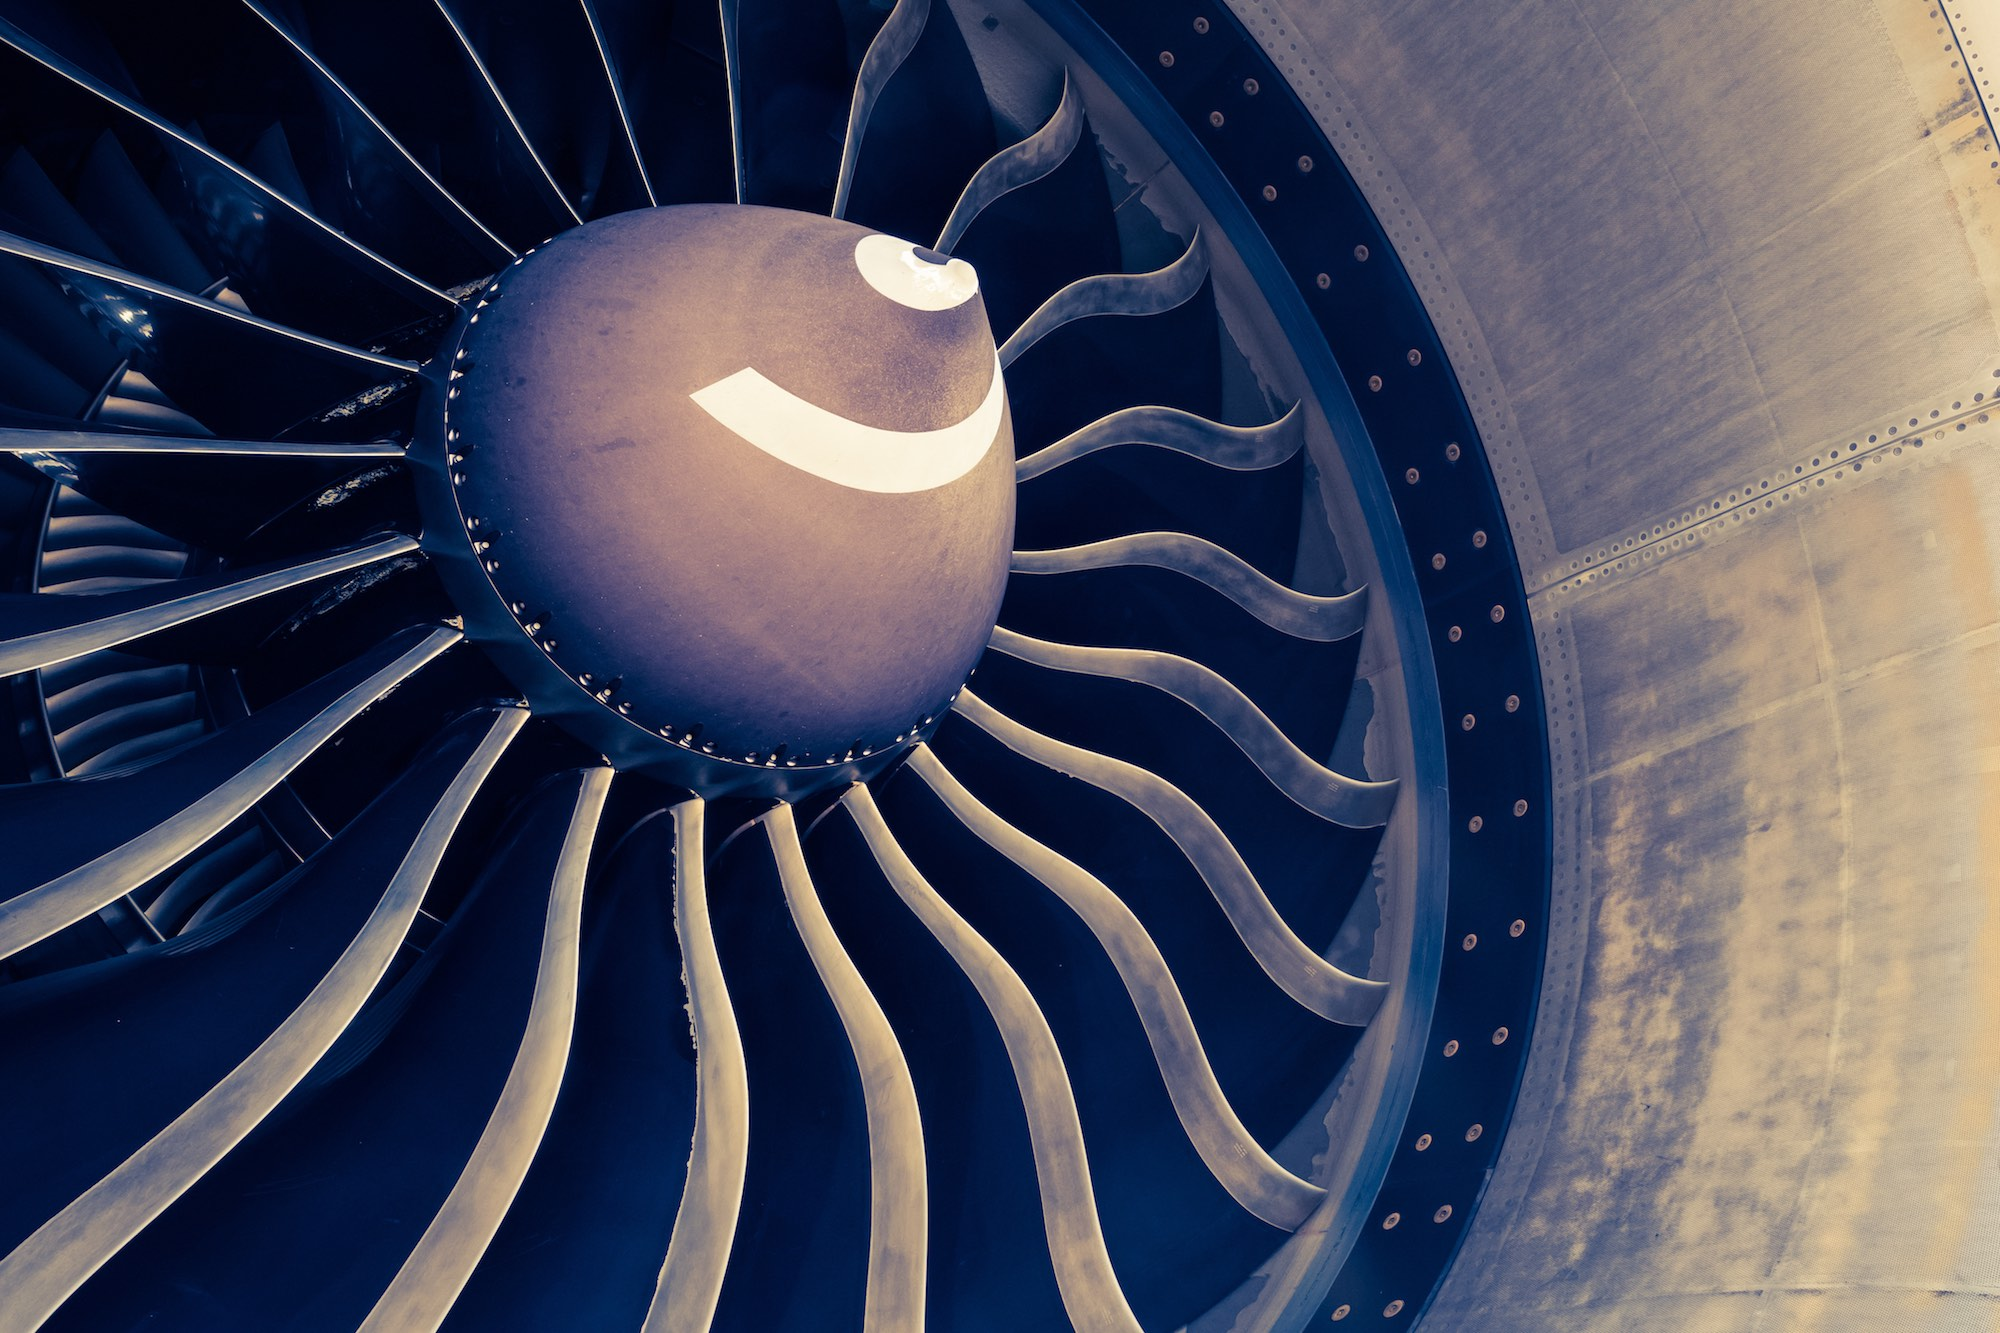 EASA QUALITY COMPLIANCE - CONTINUING AIRWORTHINESS MANAGEMENT ORGANIZATION - CAMO